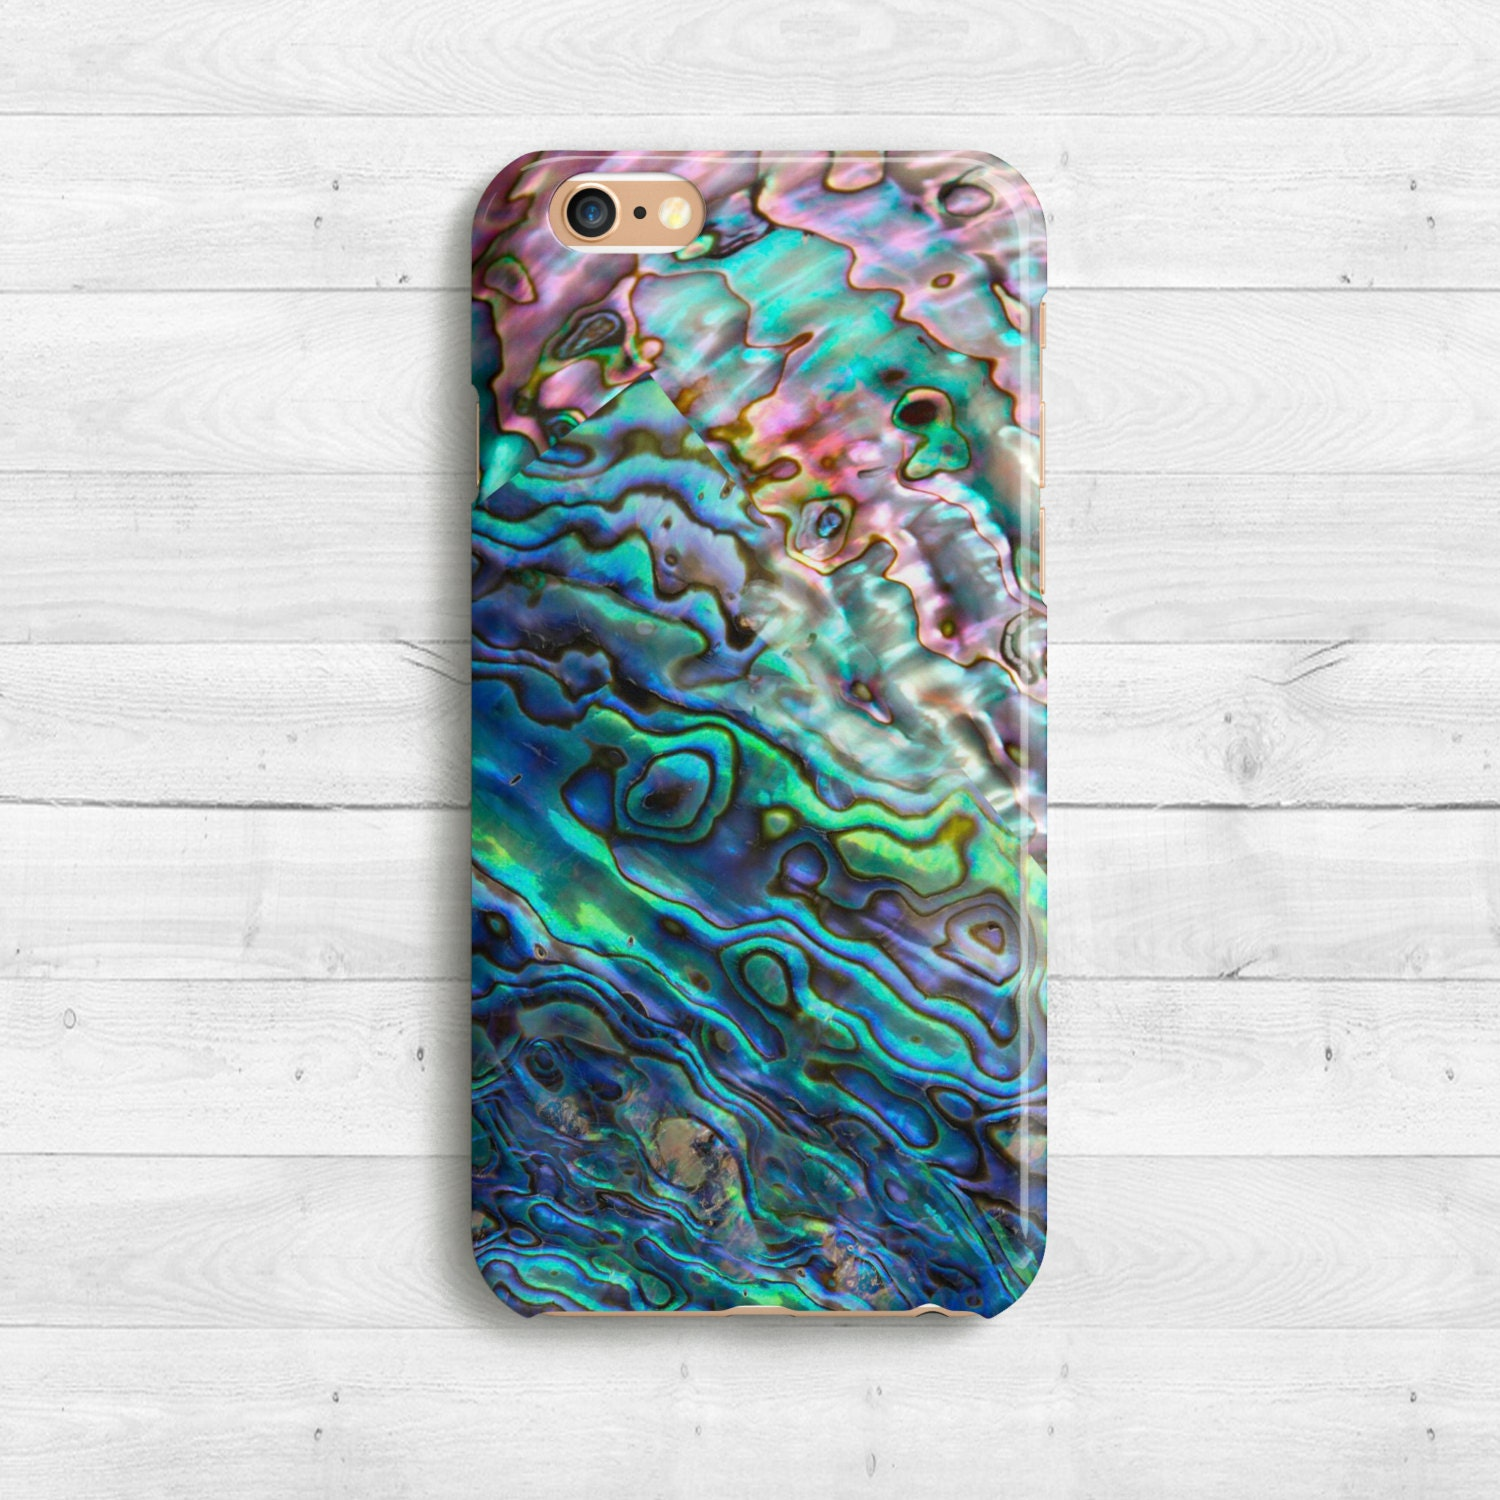 Galaxy S7 Case Etsy